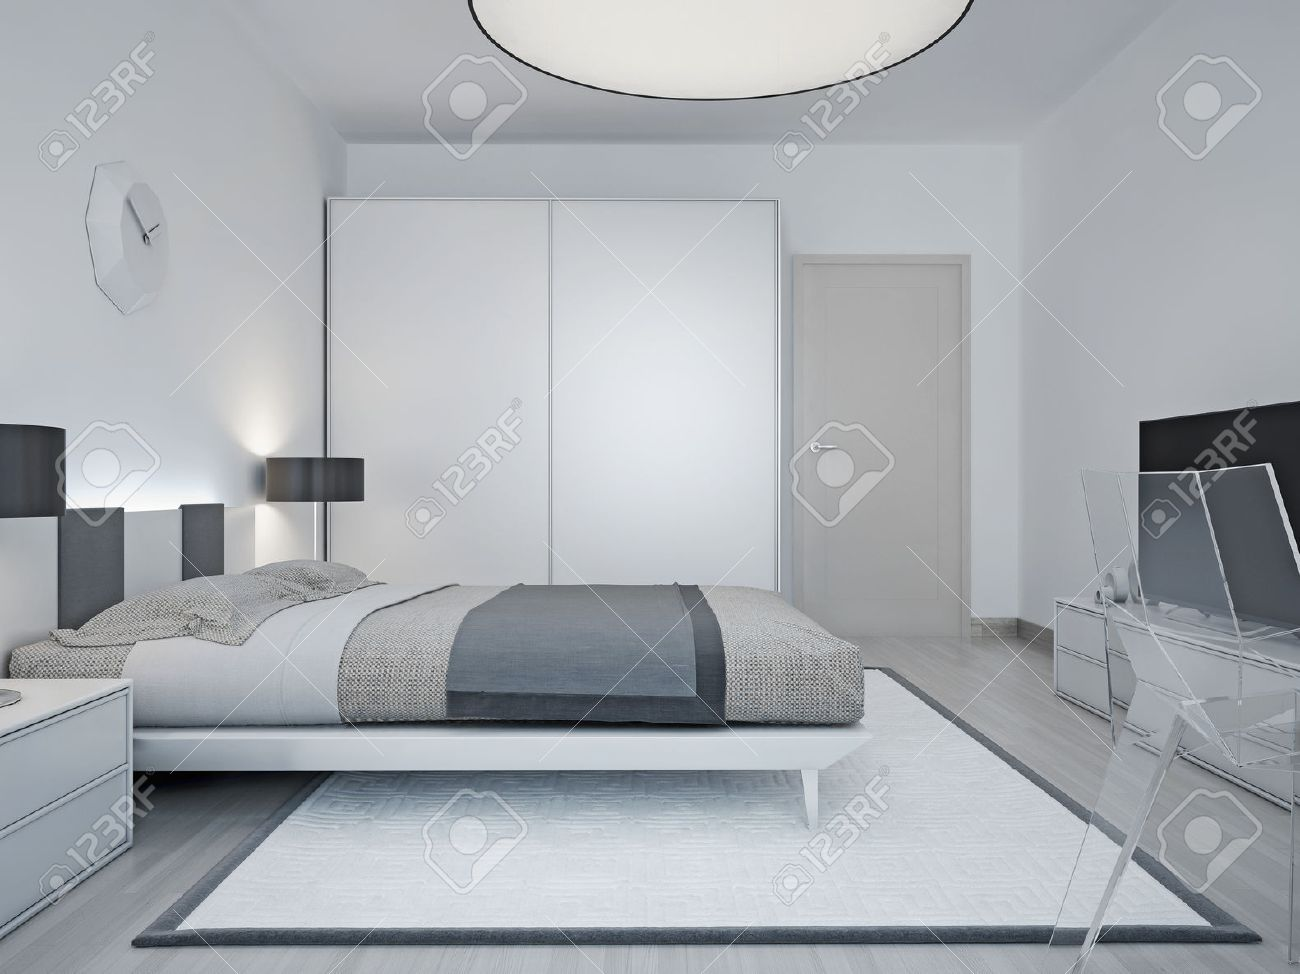 modern hotel room design. room with luxury bed, black lamp